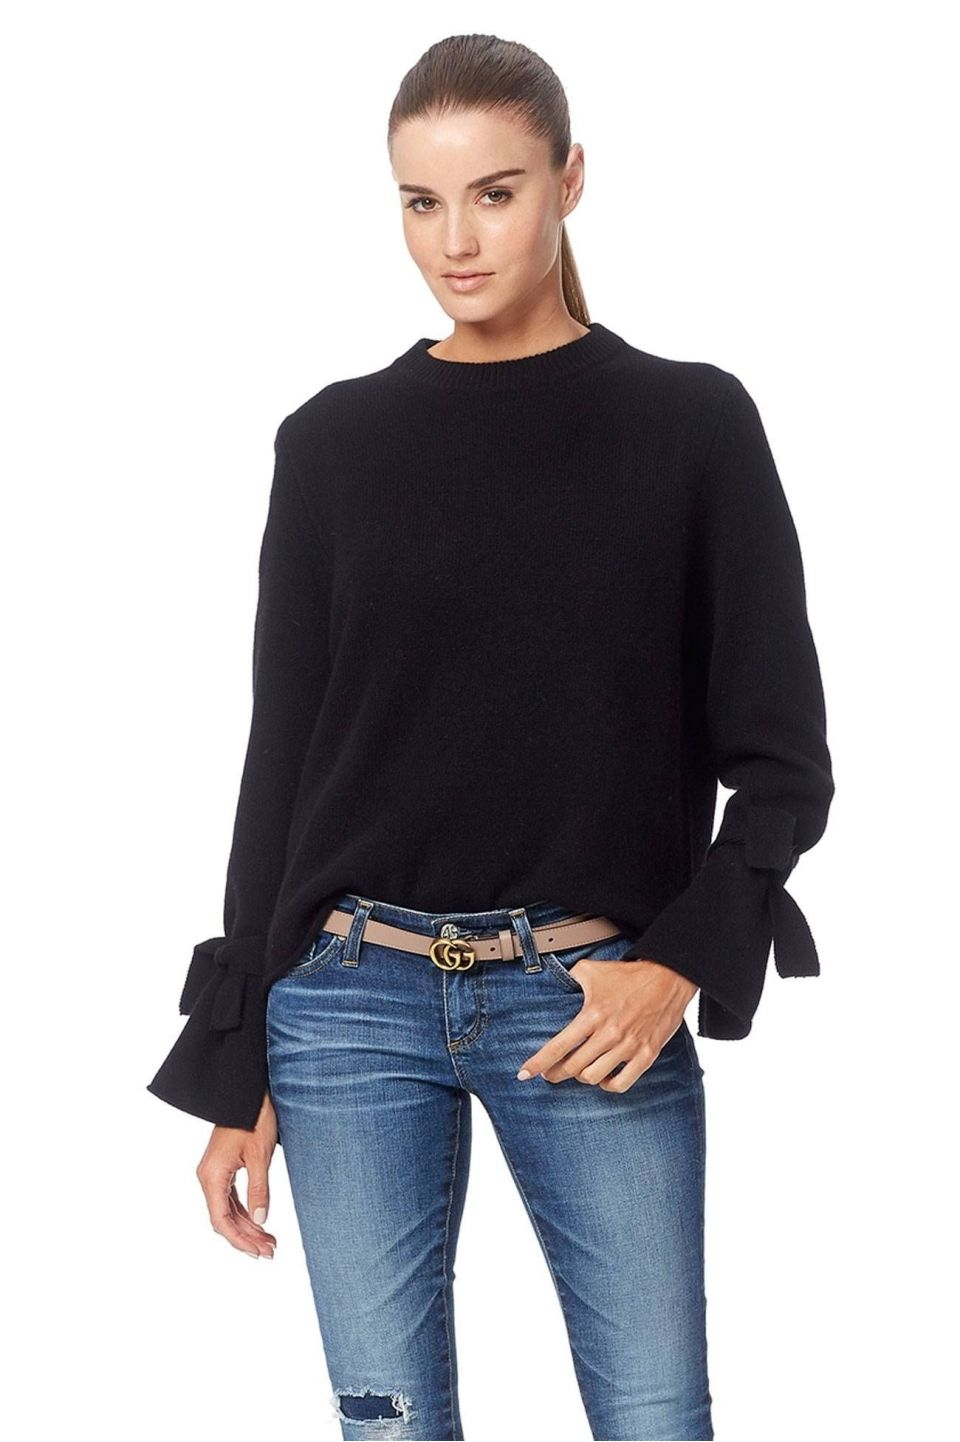 360 Cashmere Erika Sweater   Black or Burgundy